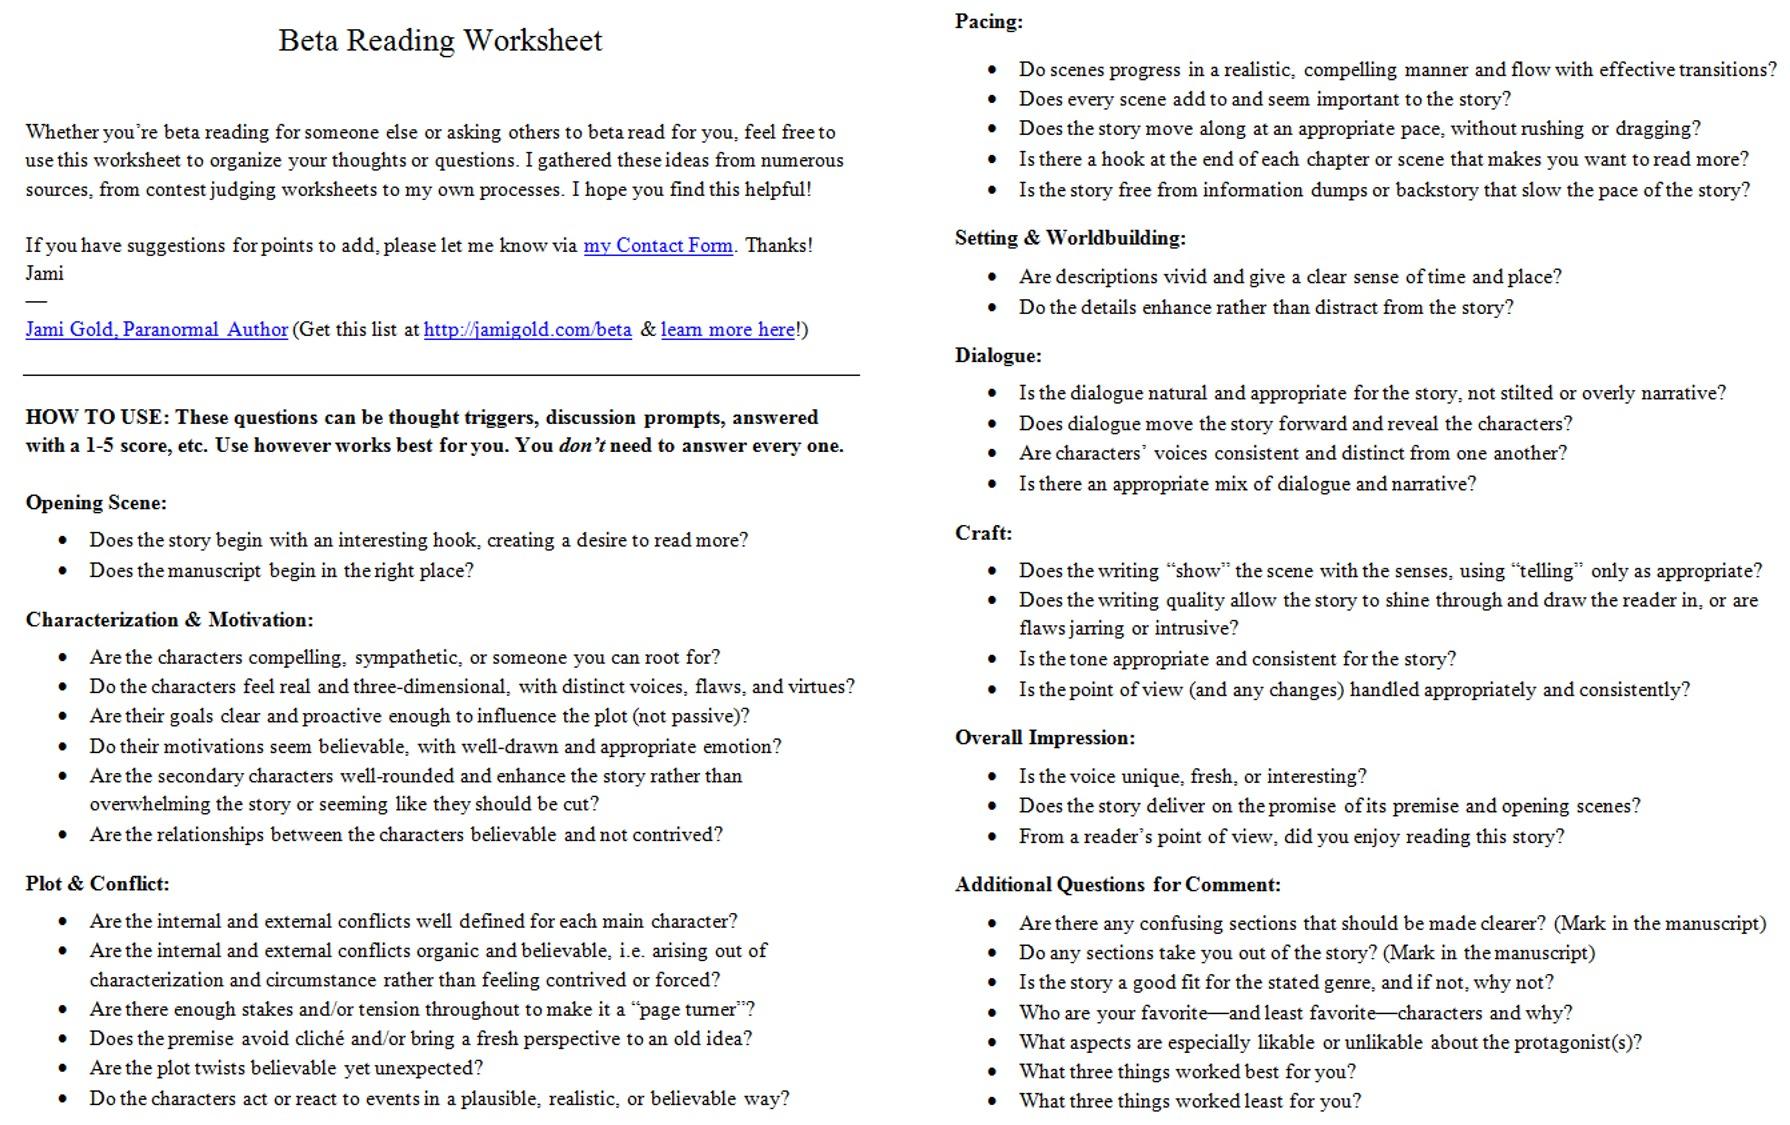 Weirdmailus  Terrific Worksheets For Writers  Jami Gold Paranormal Author With Heavenly Screen Shot Of The Twopage Beta Reading Worksheet With Beauteous Cbt Worksheets For Depression Also Postalease Worksheet In Addition Tissue Worksheet Answers And The Quadratic Formula Worksheet Answers As Well As Speed And Velocity Worksheet With Answers Additionally Variable Worksheets From Jamigoldcom With Weirdmailus  Heavenly Worksheets For Writers  Jami Gold Paranormal Author With Beauteous Screen Shot Of The Twopage Beta Reading Worksheet And Terrific Cbt Worksheets For Depression Also Postalease Worksheet In Addition Tissue Worksheet Answers From Jamigoldcom